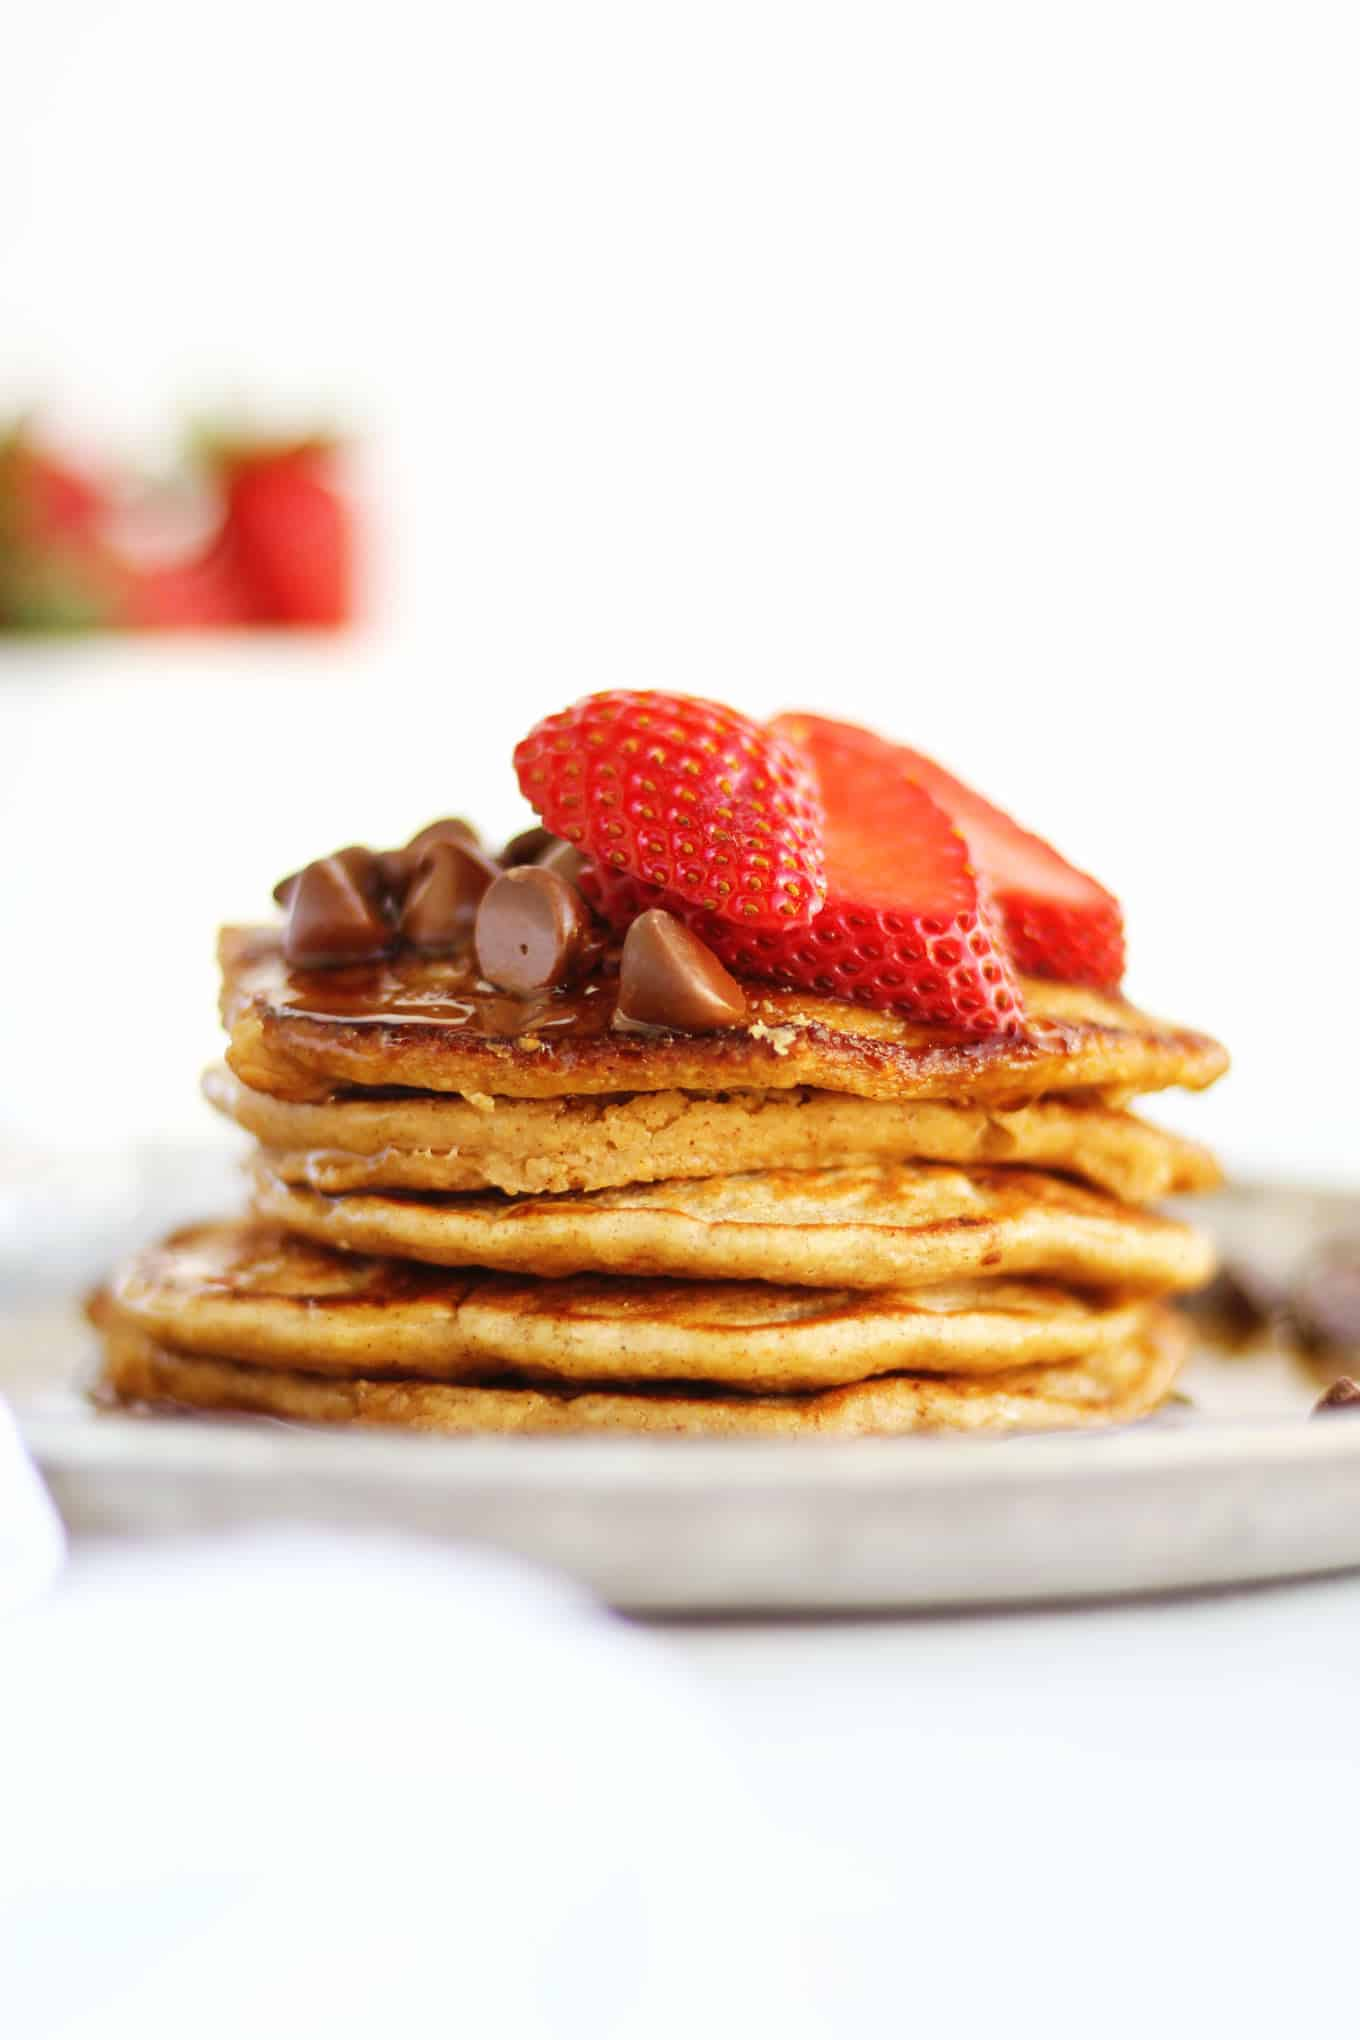 Oatmeal pancakes - a light dietary treat 97